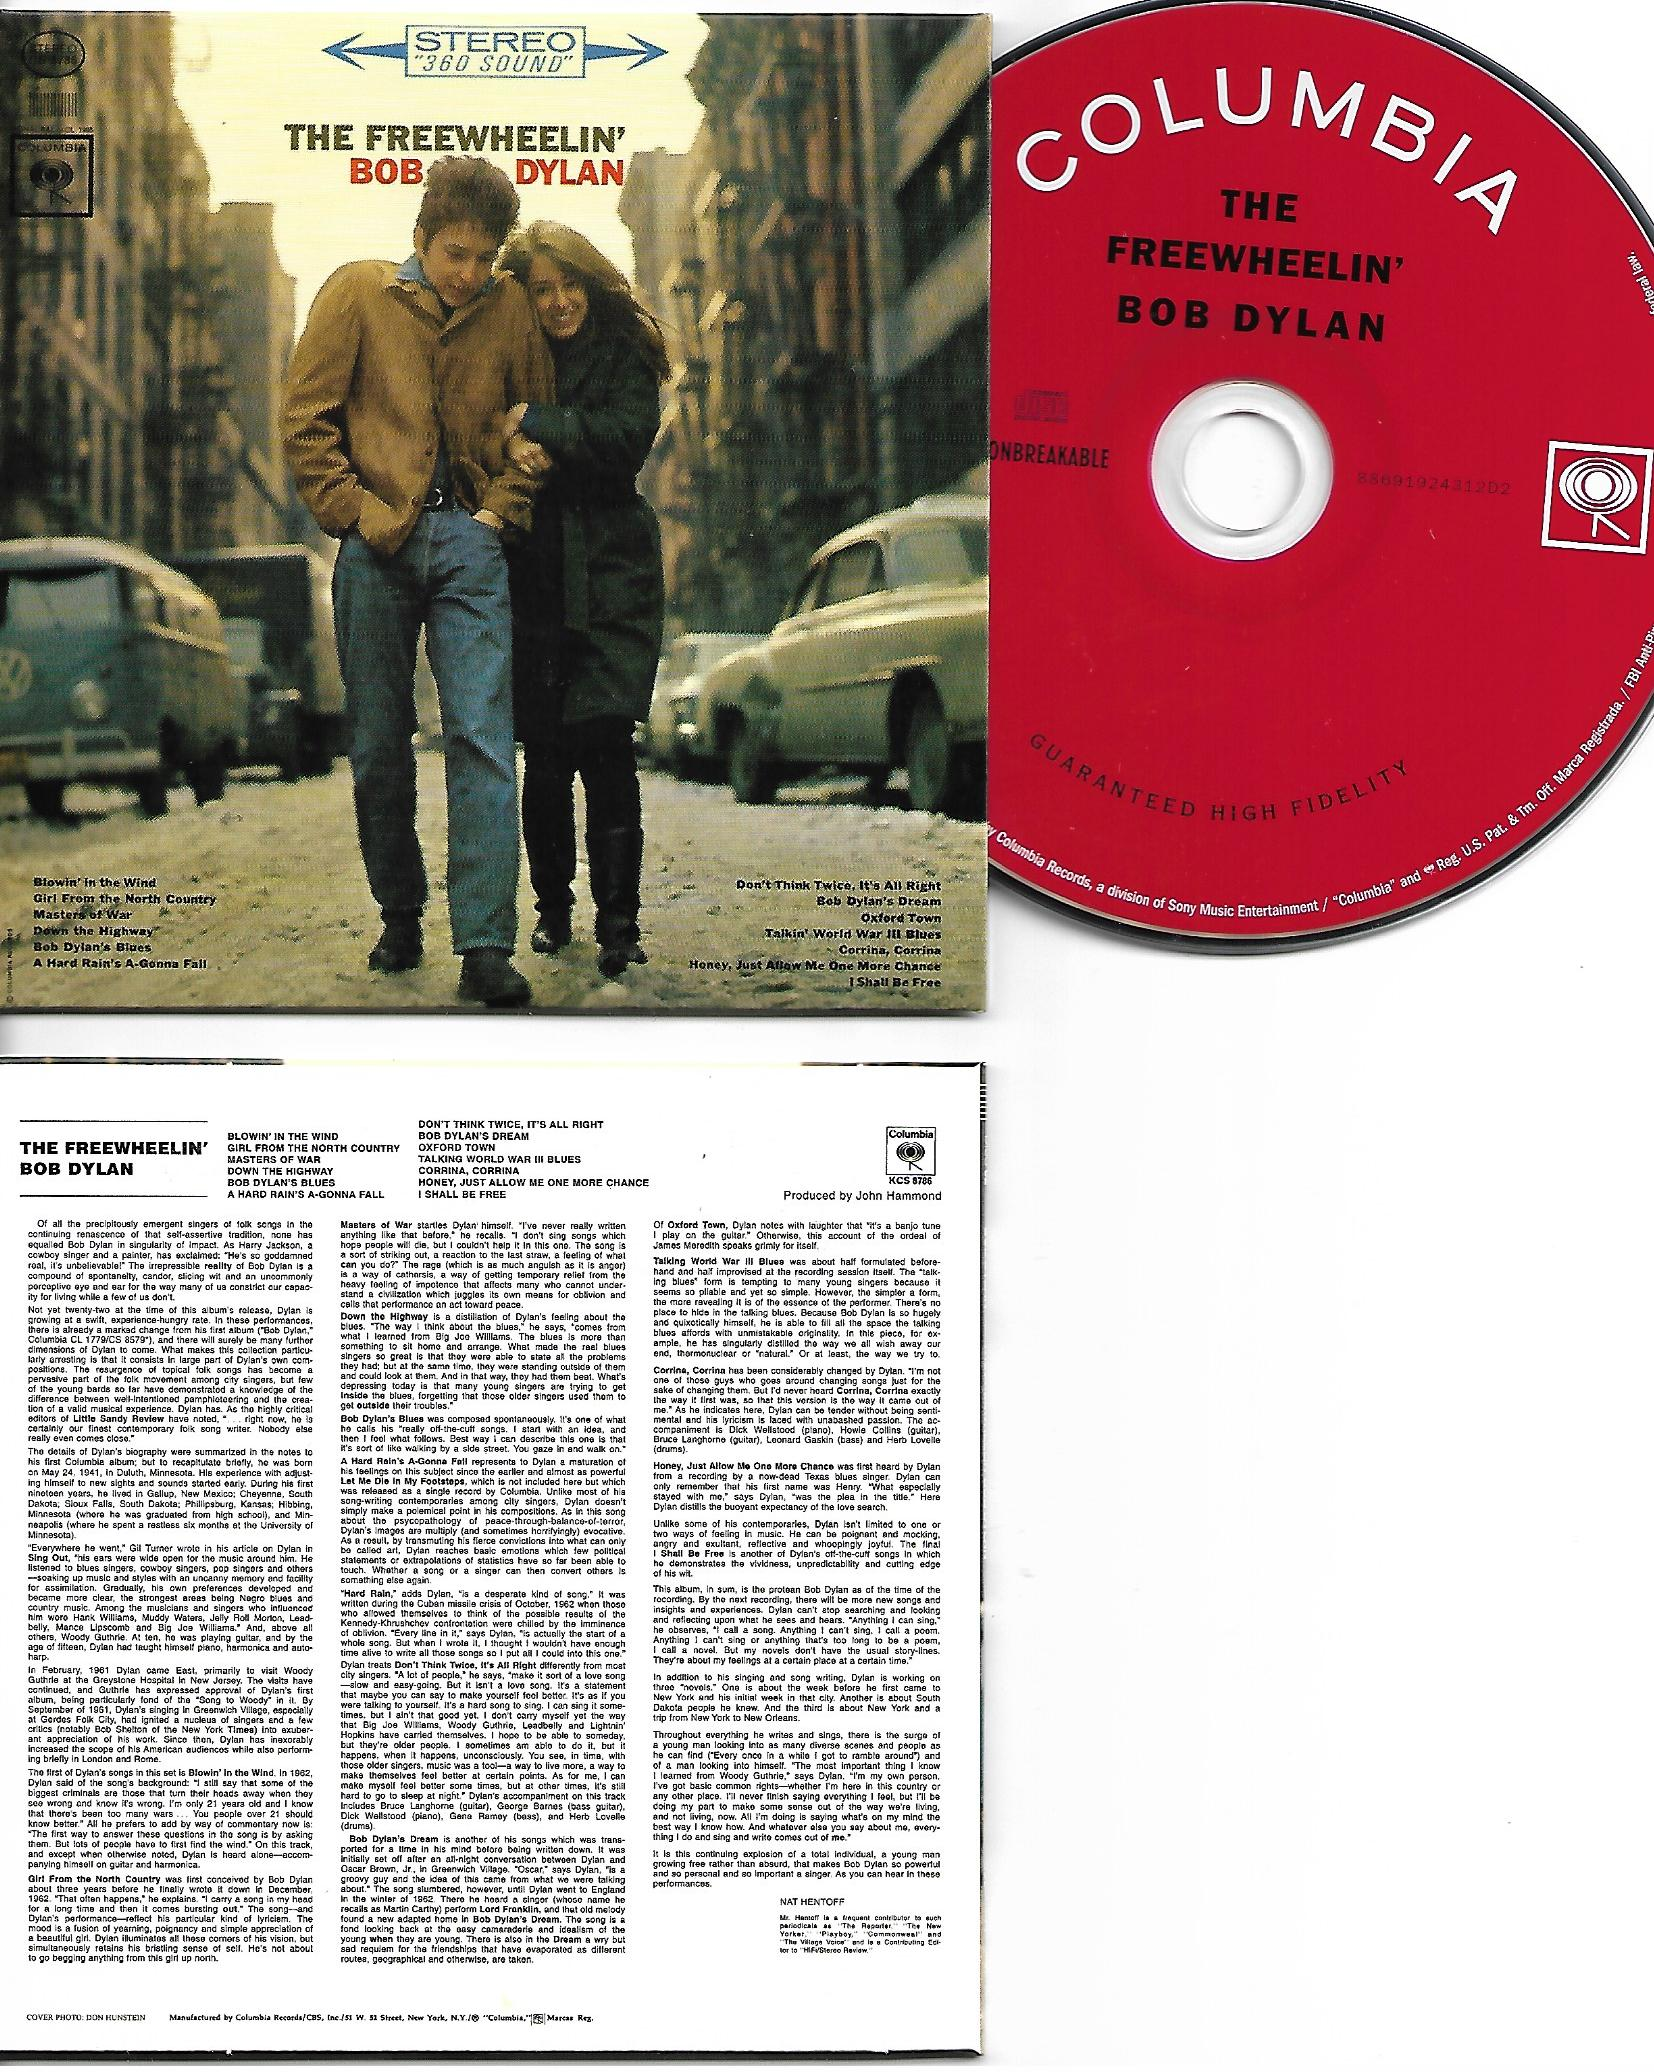 Bob DYLAN - The Freewheelin' Bob Dylan 1963 - Mini Lp Replica Card Board Sleeve